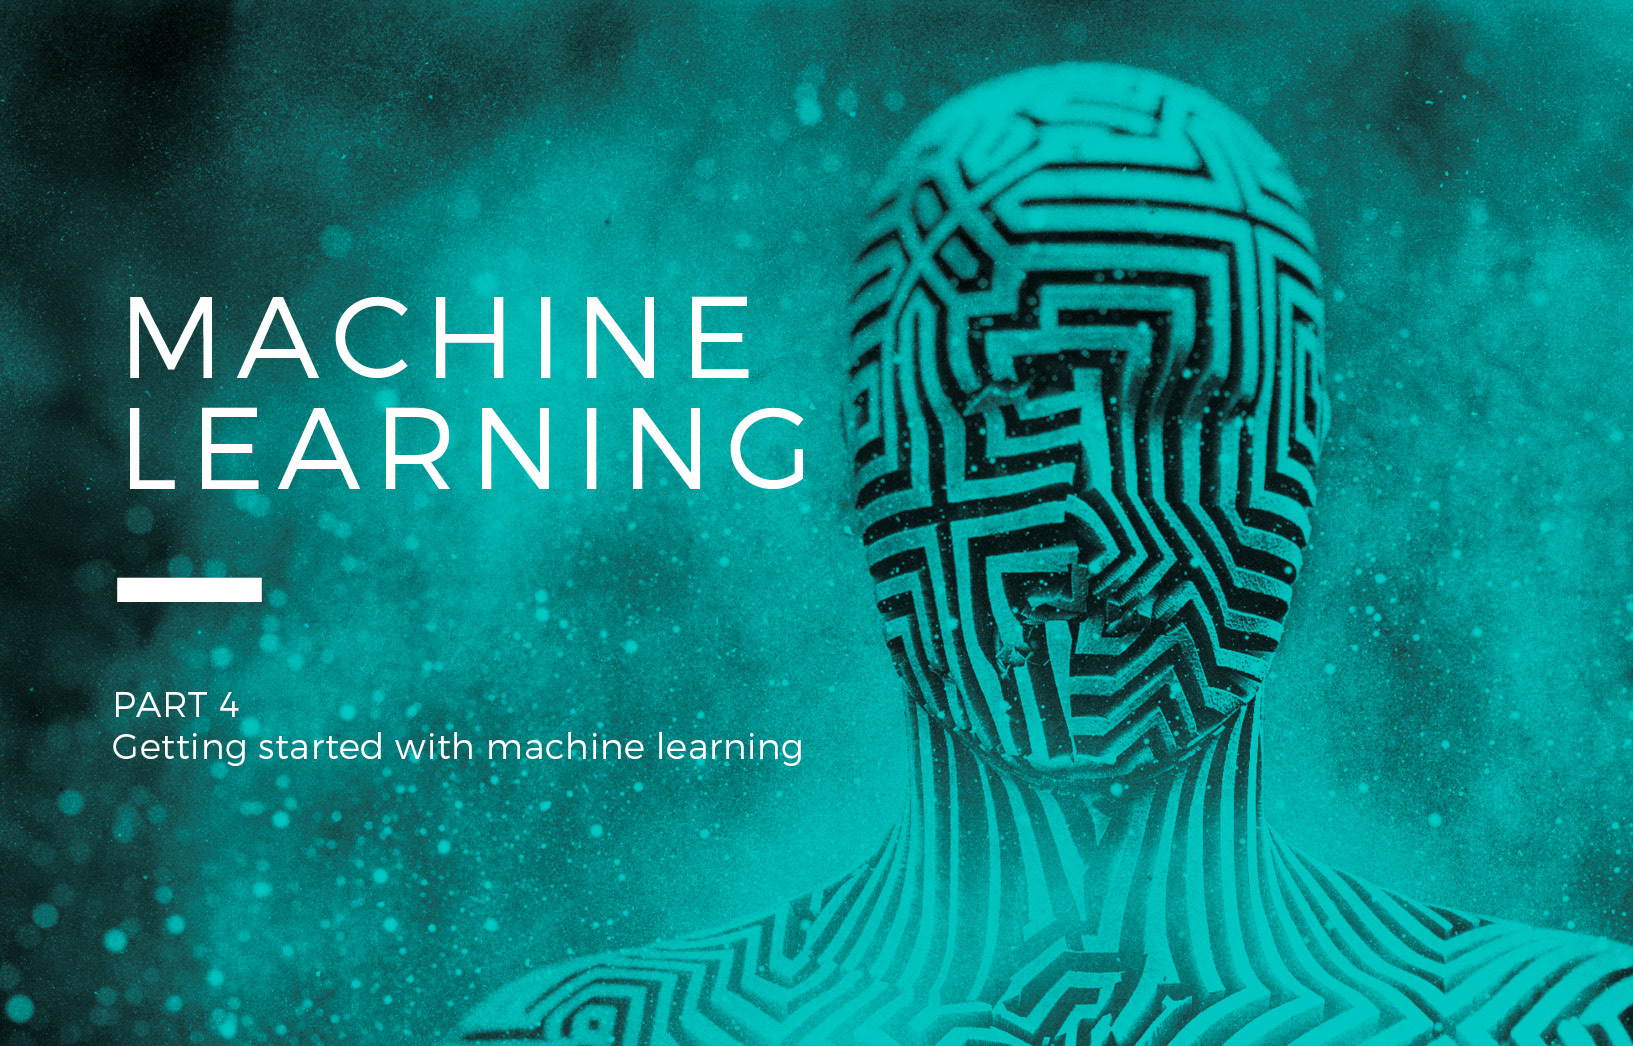 In the world of AI, Machine learning is here to stay. To compete in a digital world, companies must focus on creating personalized experiences throughout the customer journey.